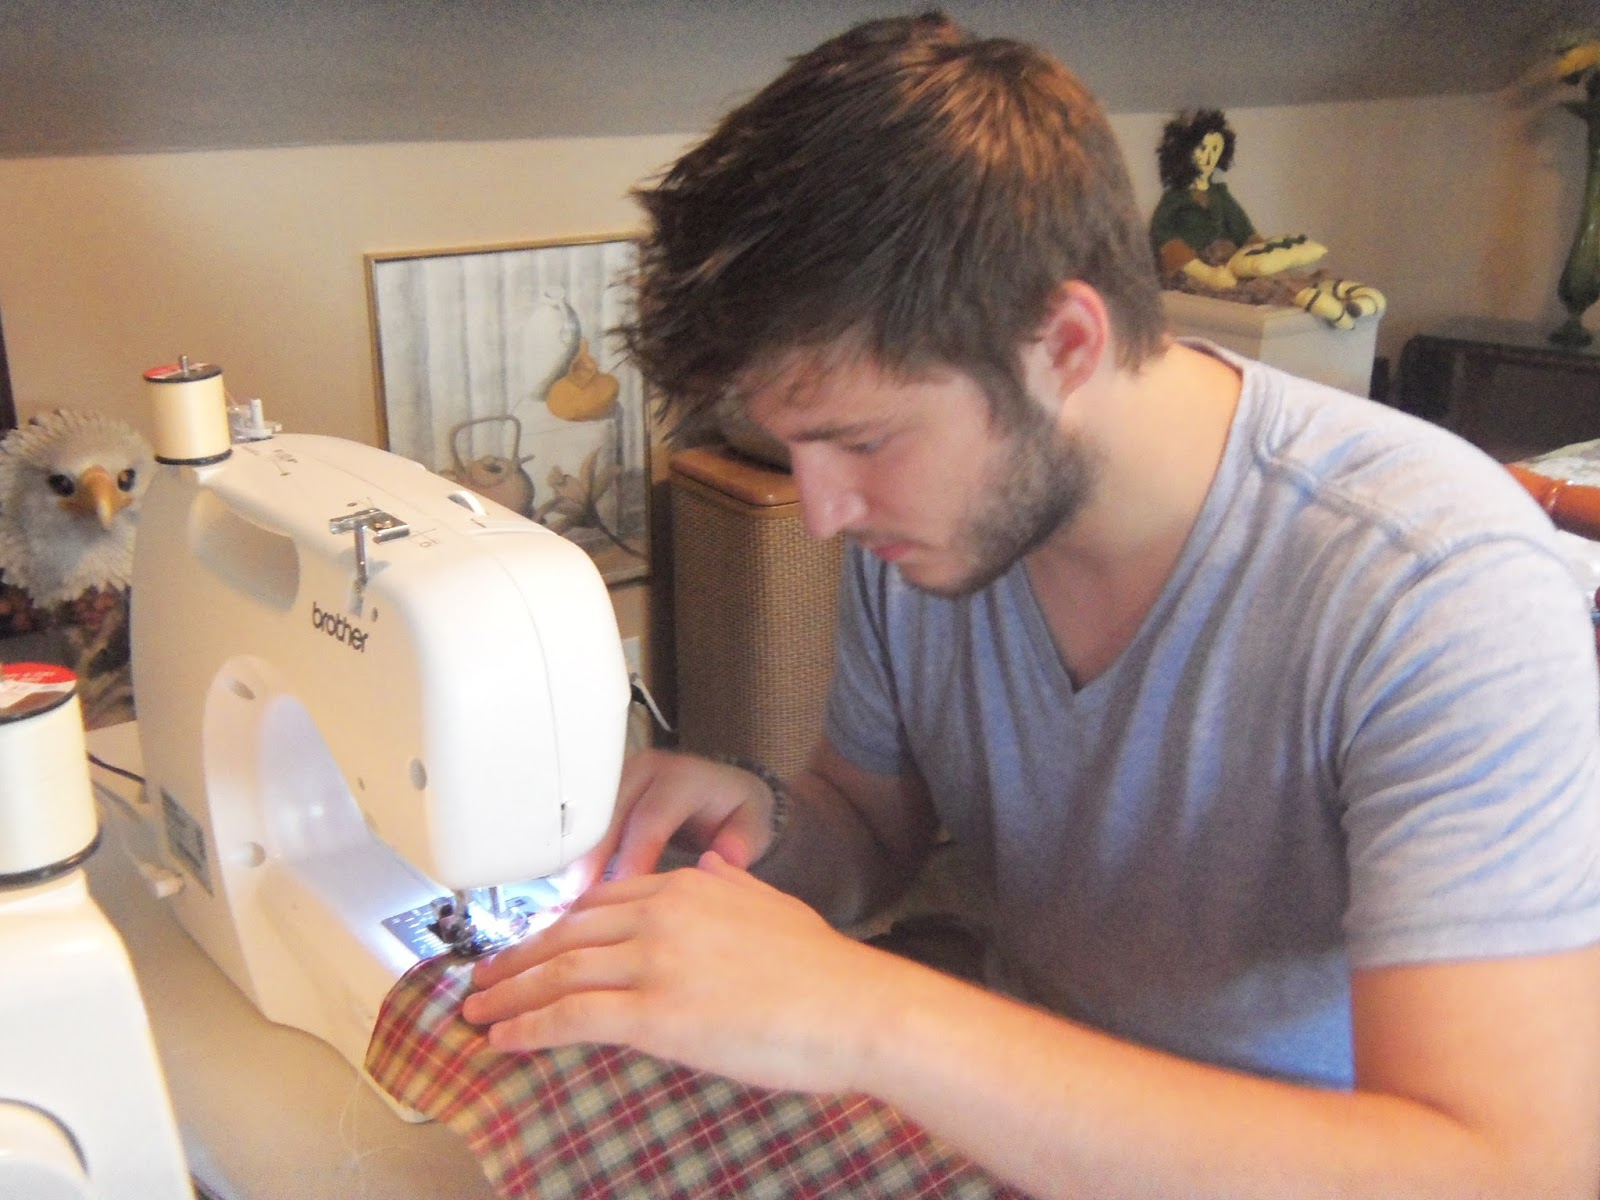 My boyfriend sewing for the first time